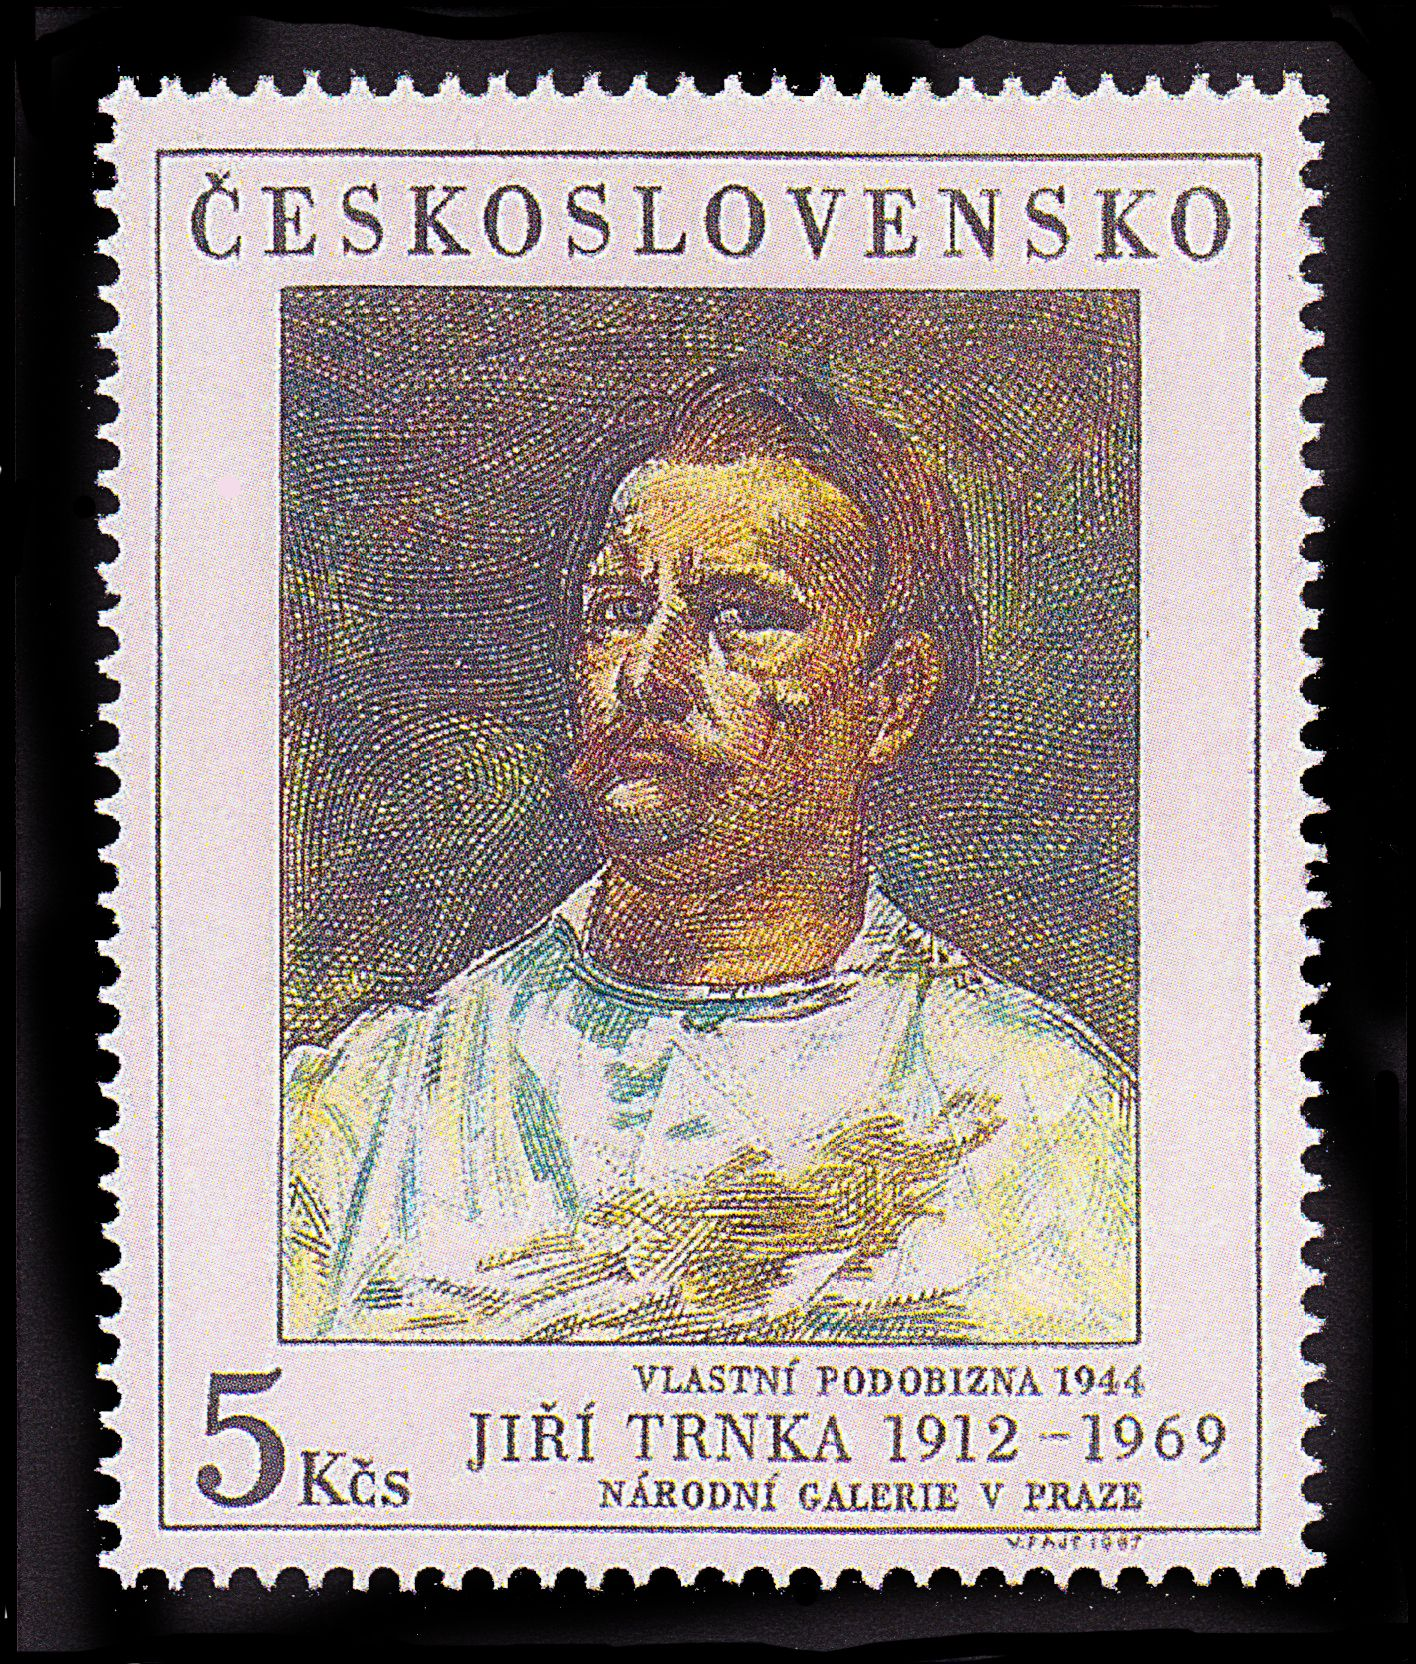 postage stamps | ... government relented and issued this postage stamp, honoring Trnka